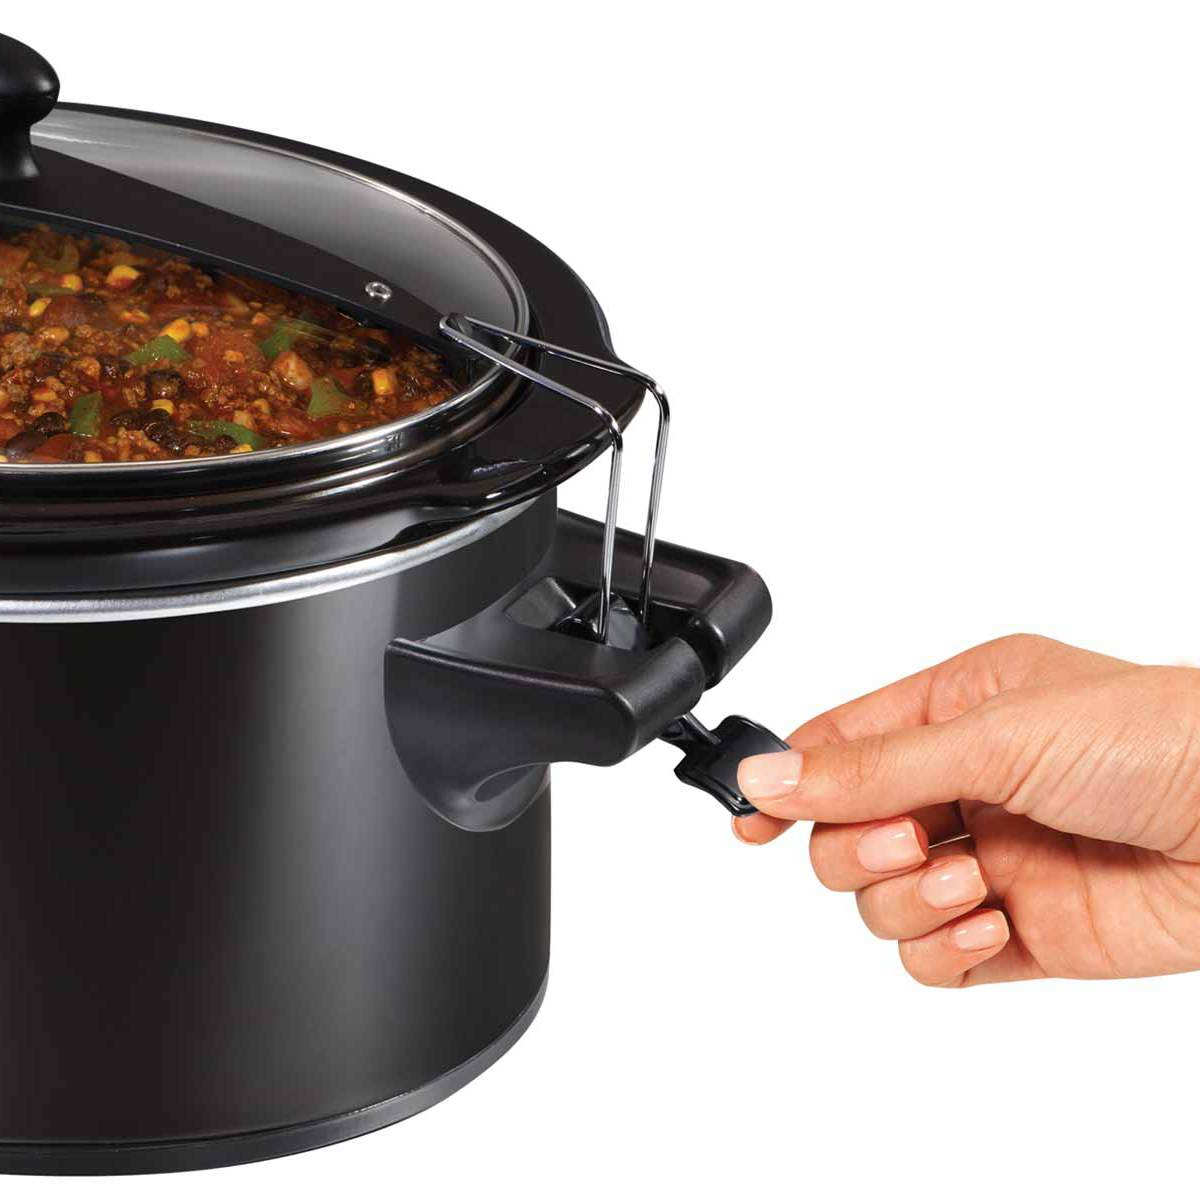 Stay or Go® 6 Quart Slow Cooker (33261)